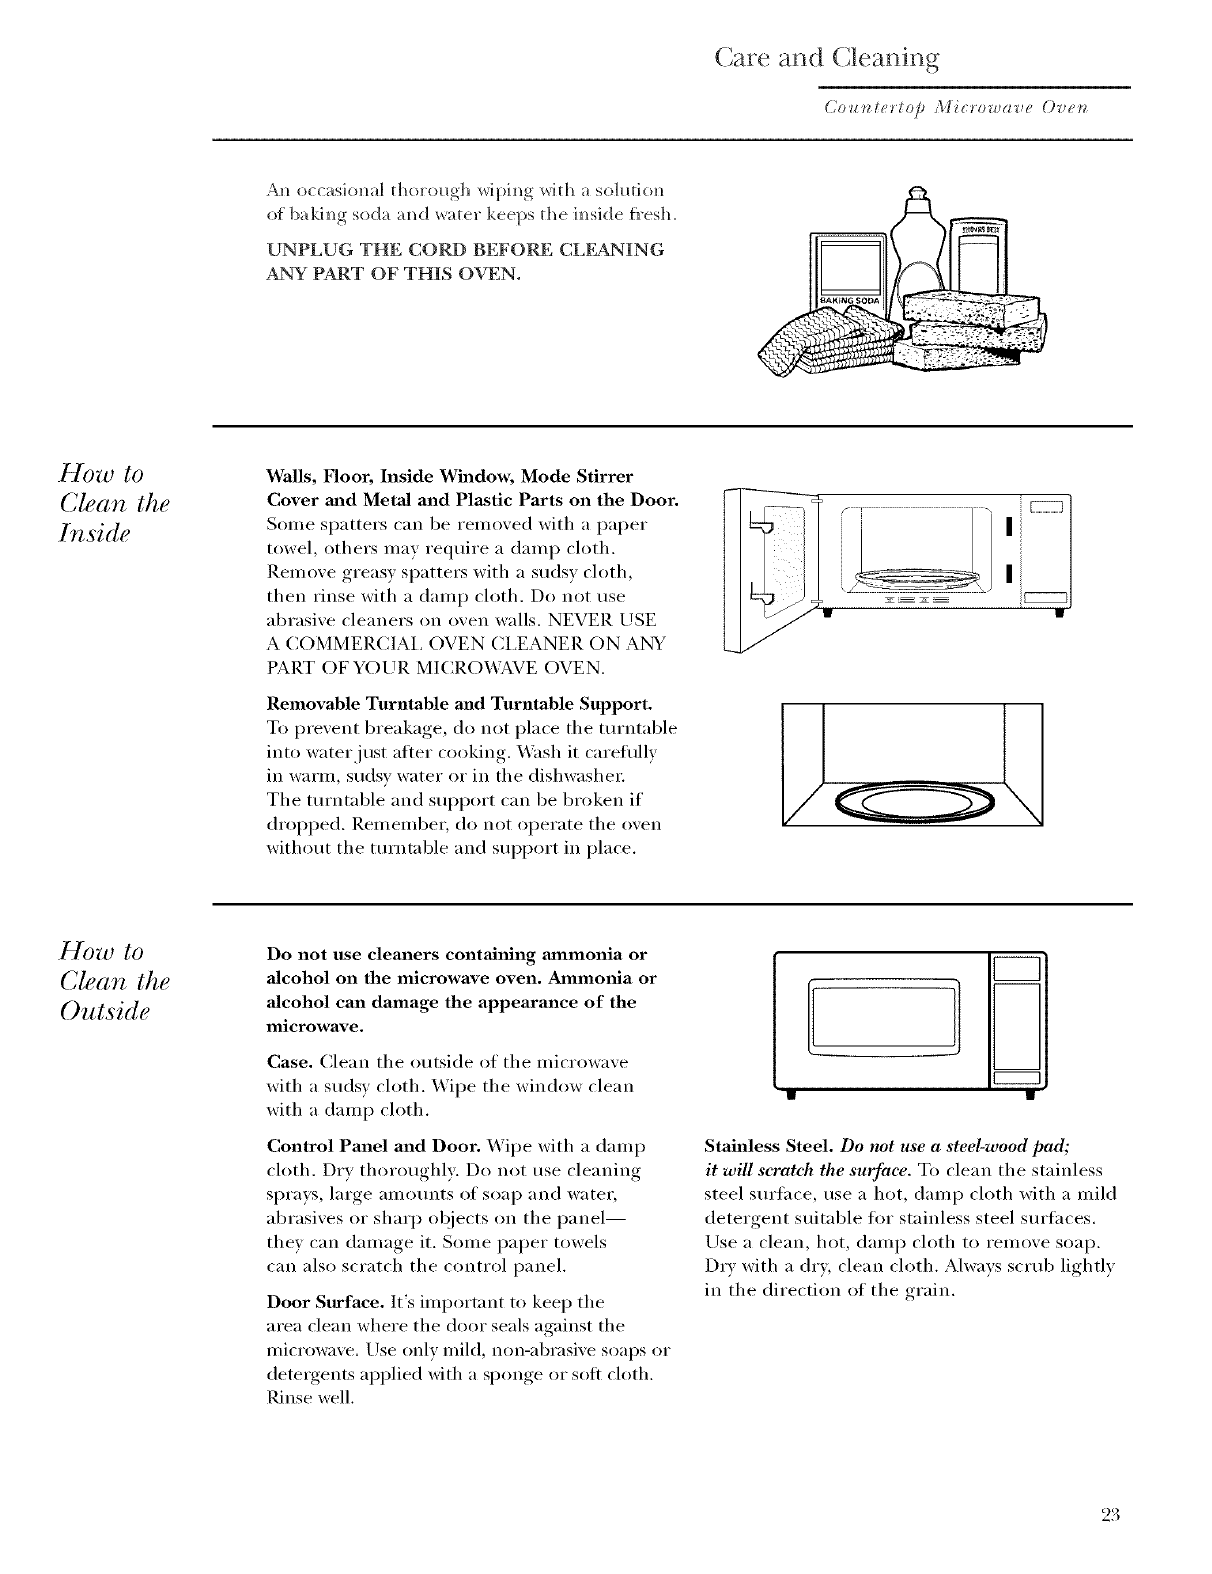 Ge Countertop Microwave Manual L0406346 Besides Monogram Oven On Parts Diagram Are And Cleaning